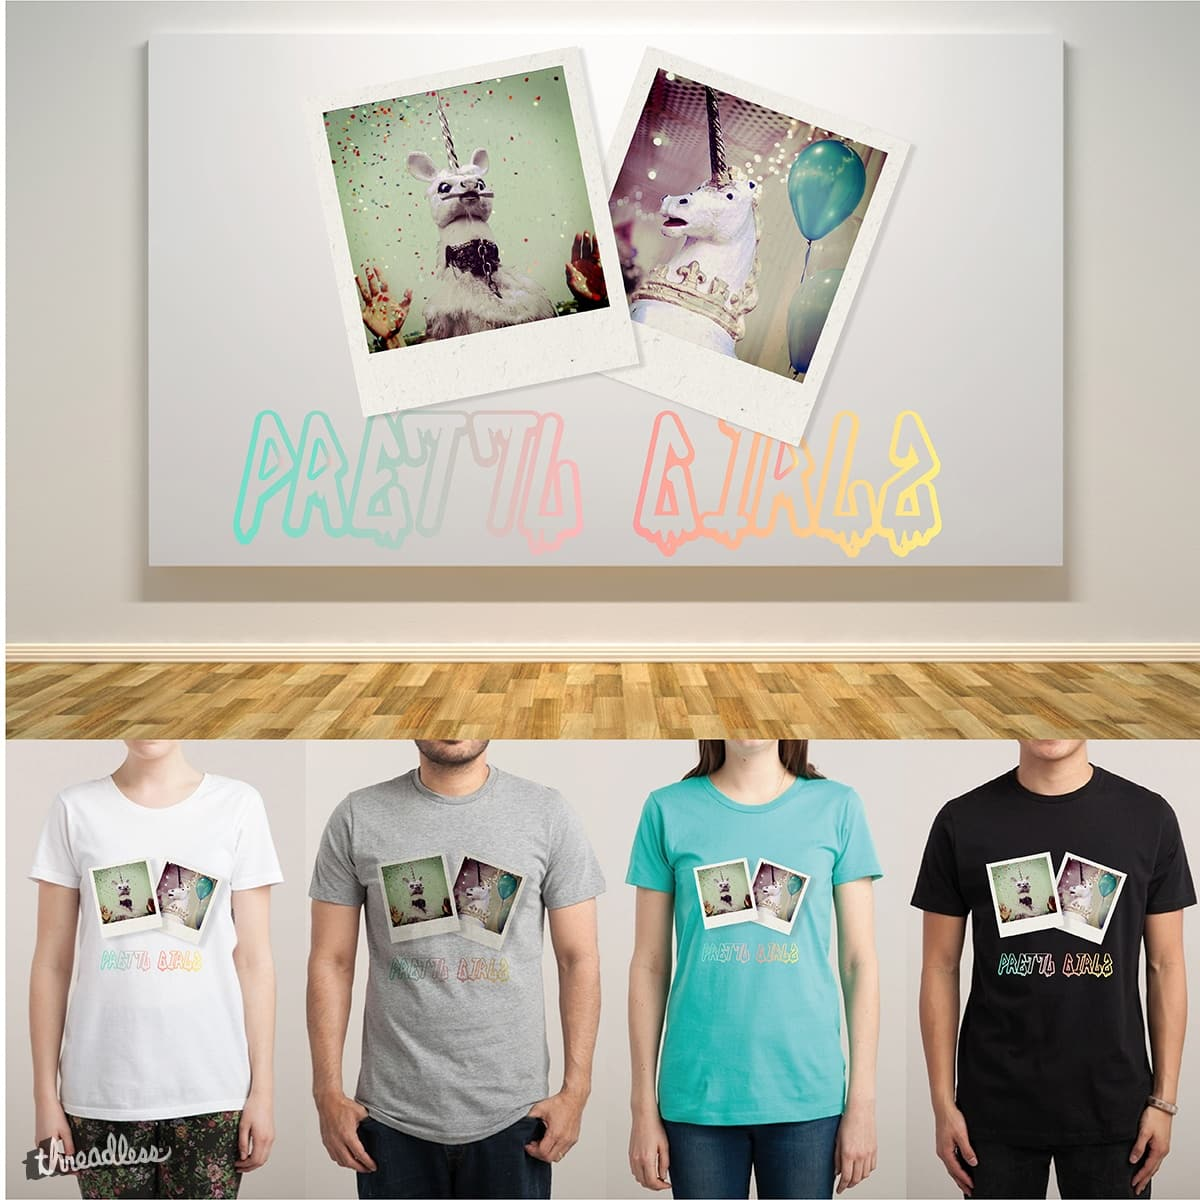 Pretty Party Unicornz by at-tea-time on Threadless